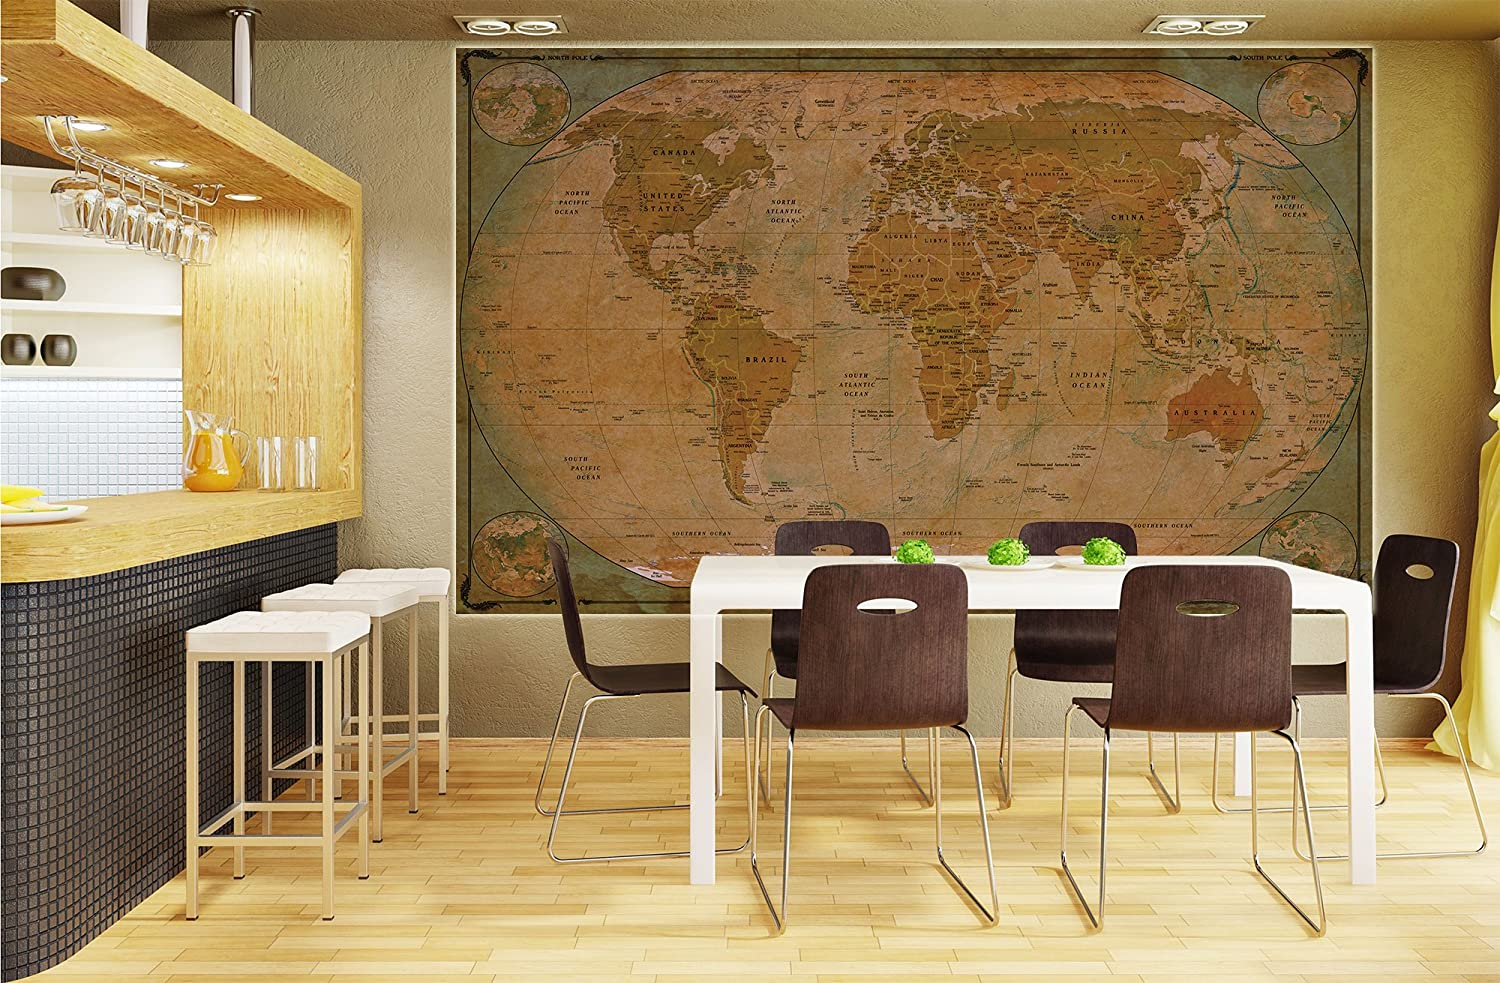 Historical world map poster xxl wall picture decoration globe historical world map poster xxl wall picture decoration globe antique vintage world map used atlas map old school wallposter photoposter wall mural wall gumiabroncs Images